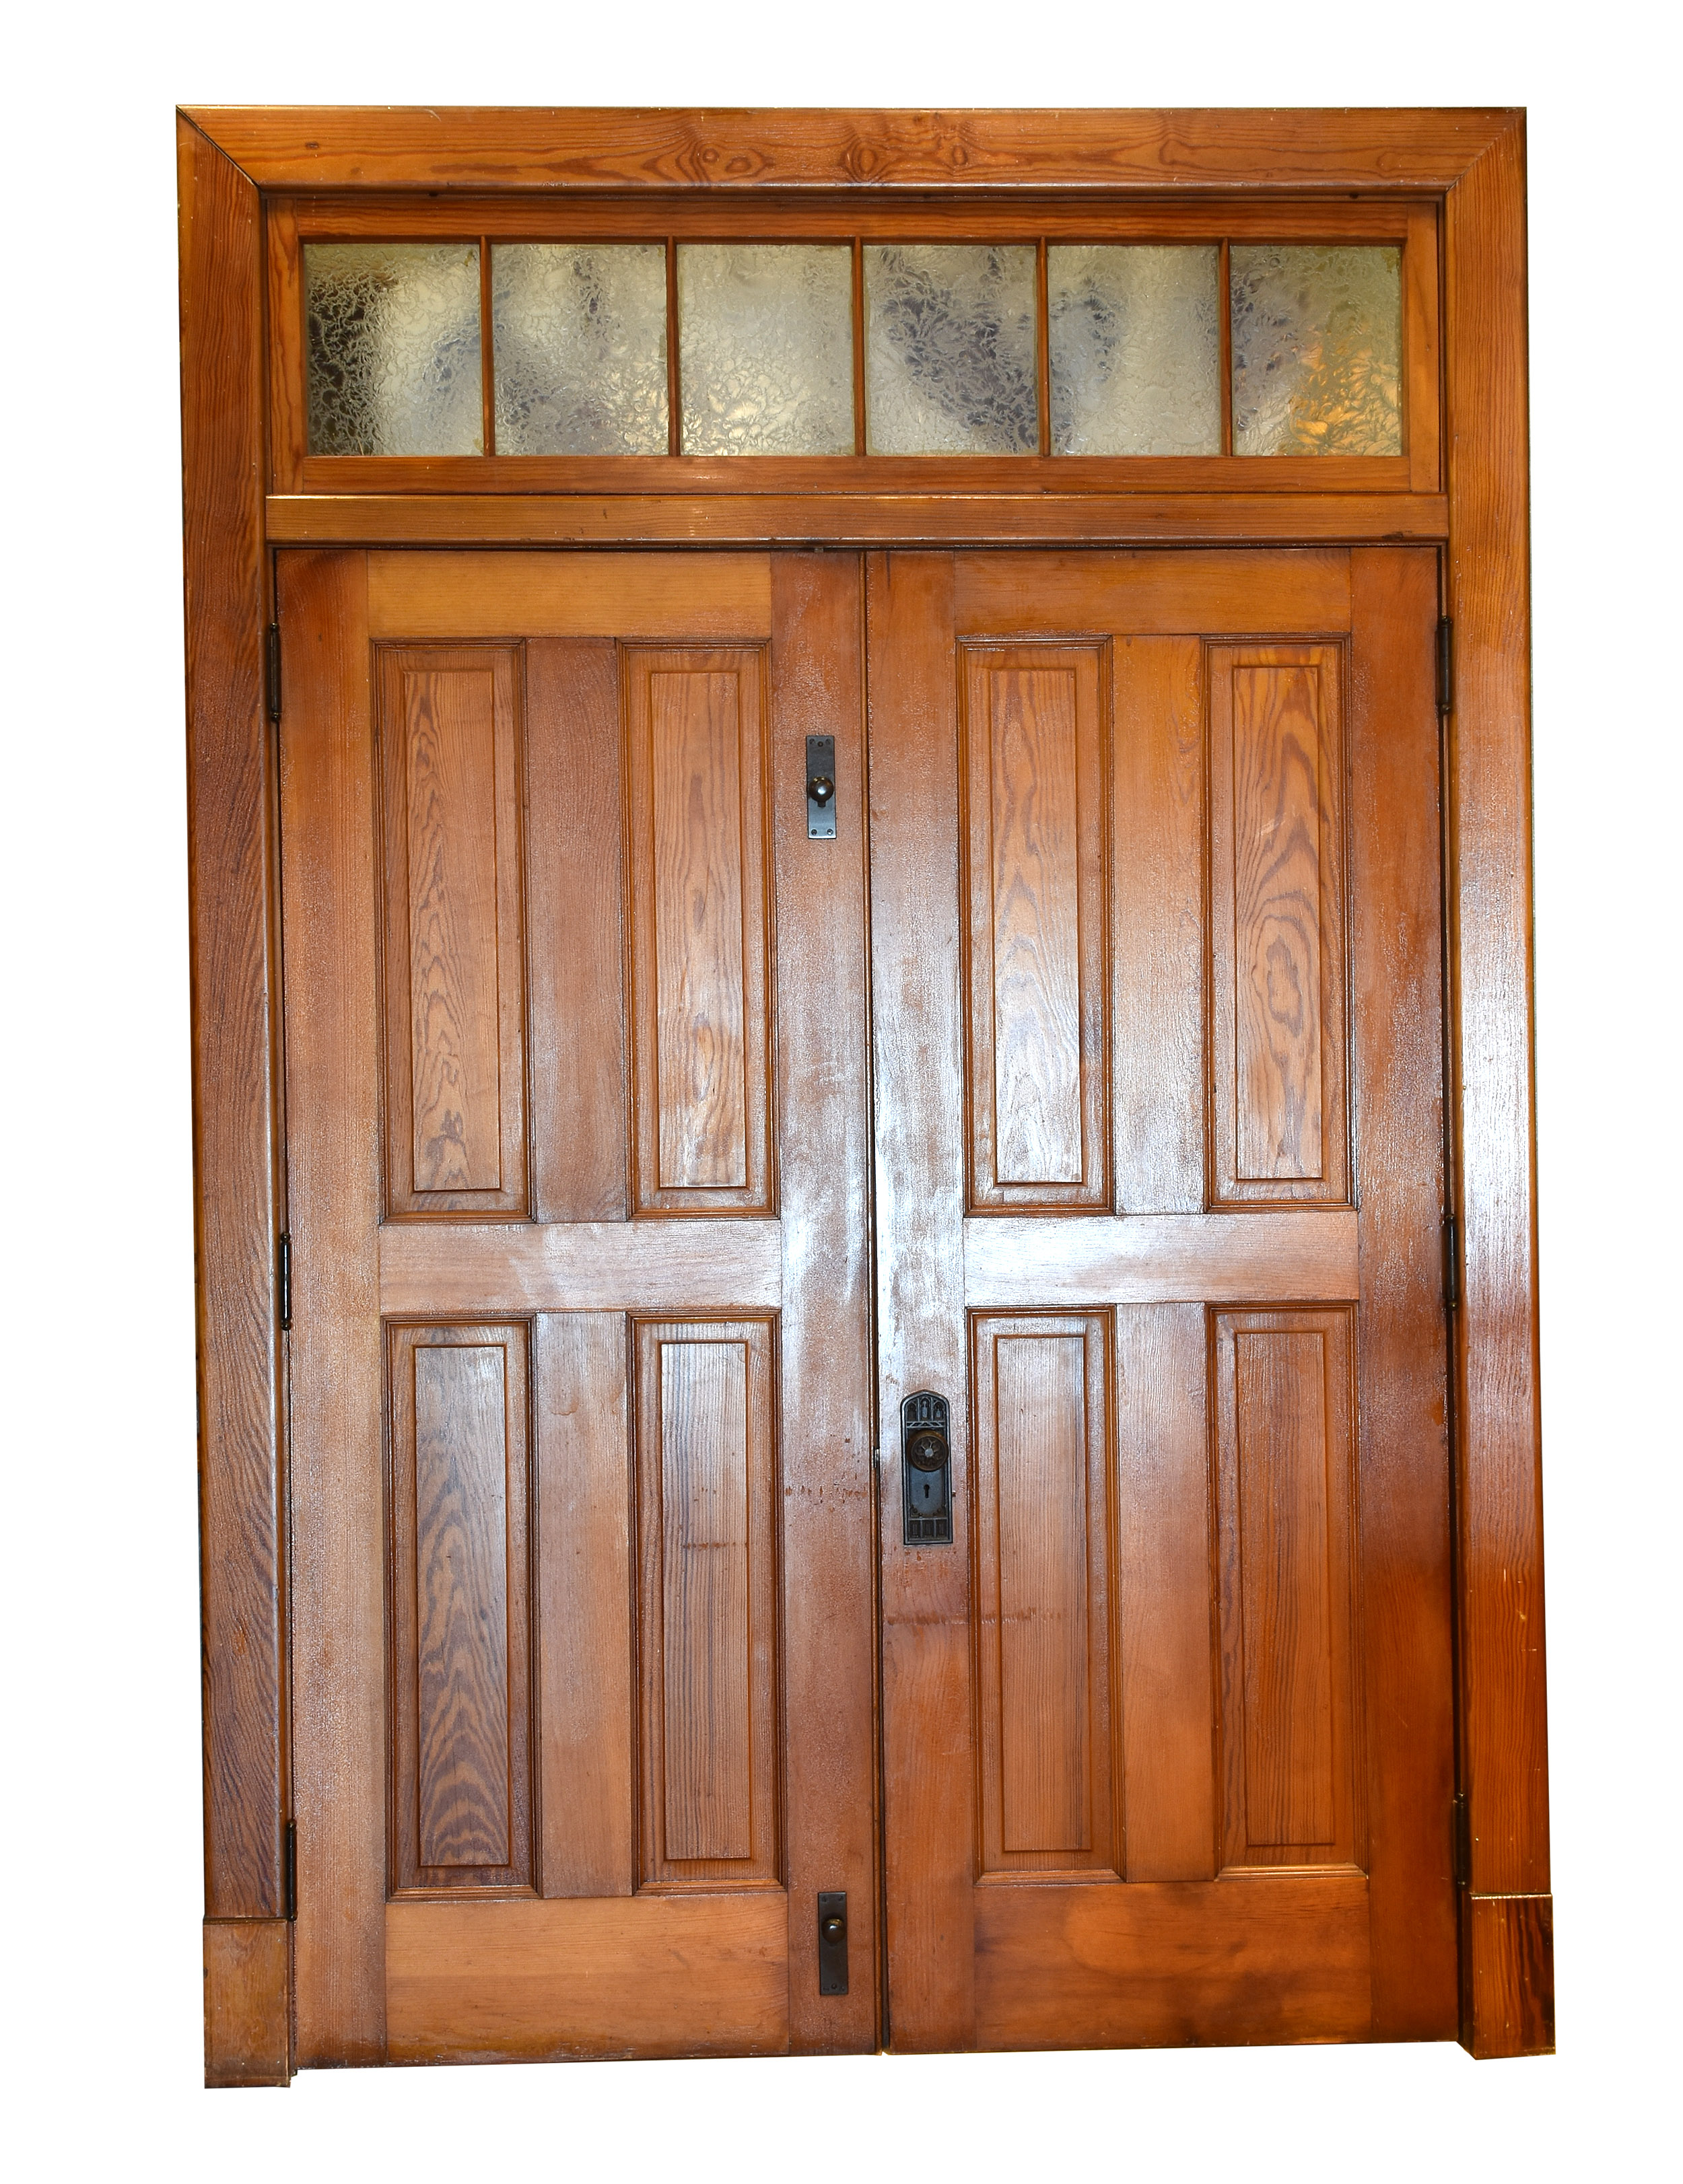 4 panel double door unit with glass transom